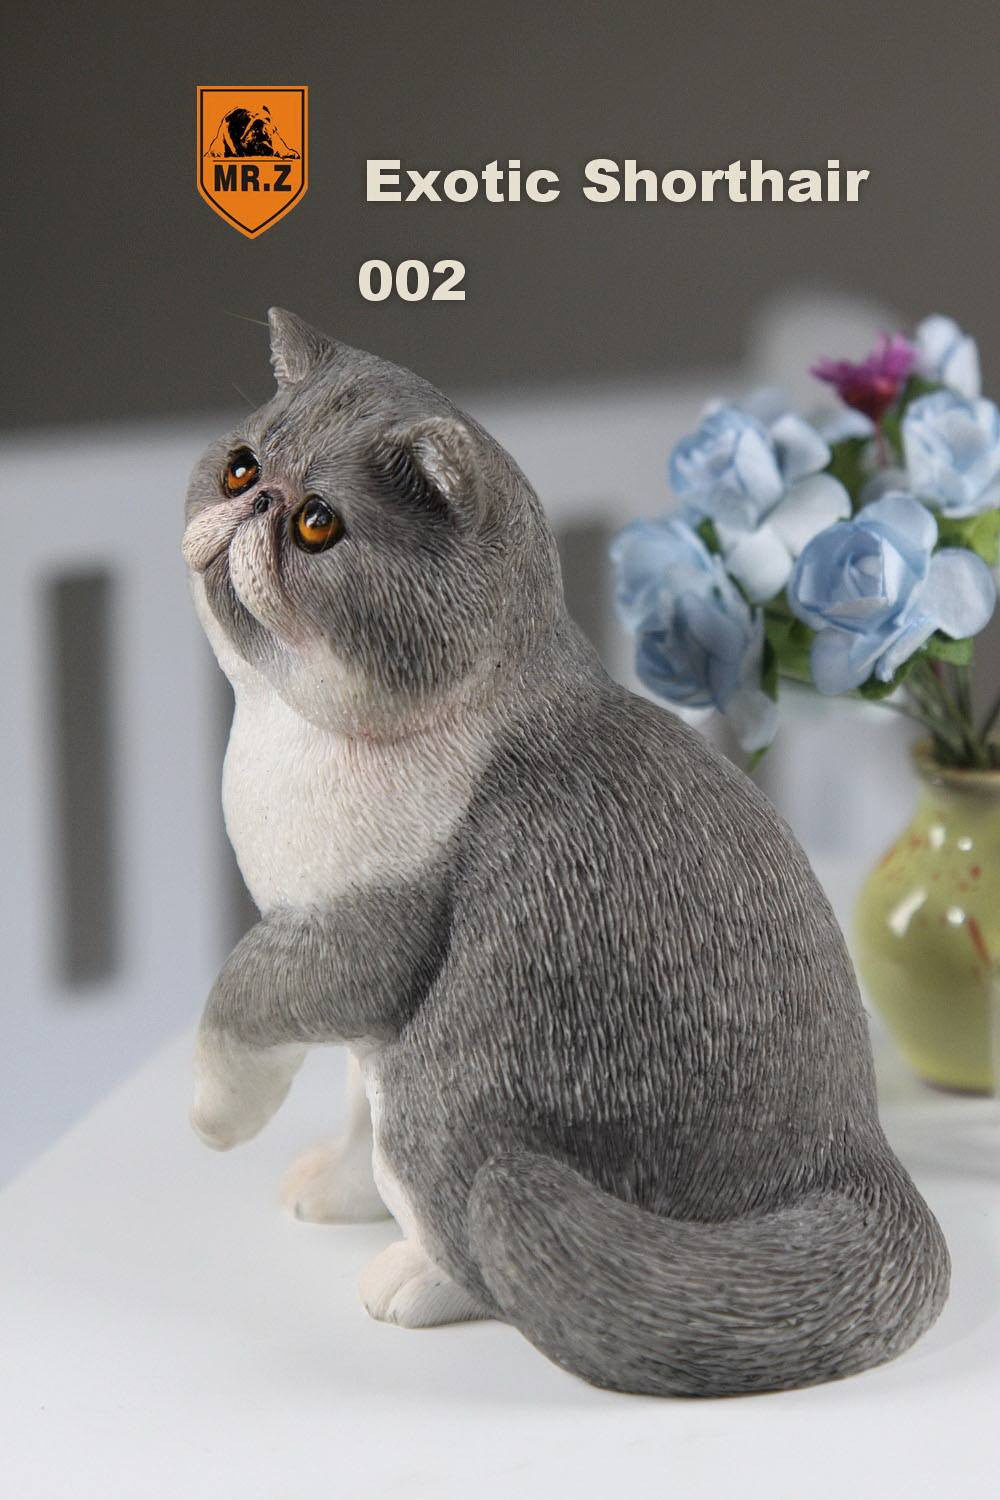 MR.Z - Real Animal Series No.8 - 1/6th Scale Exotic Shorthair Cat (Garfield) 001-005 - Marvelous Toys - 11